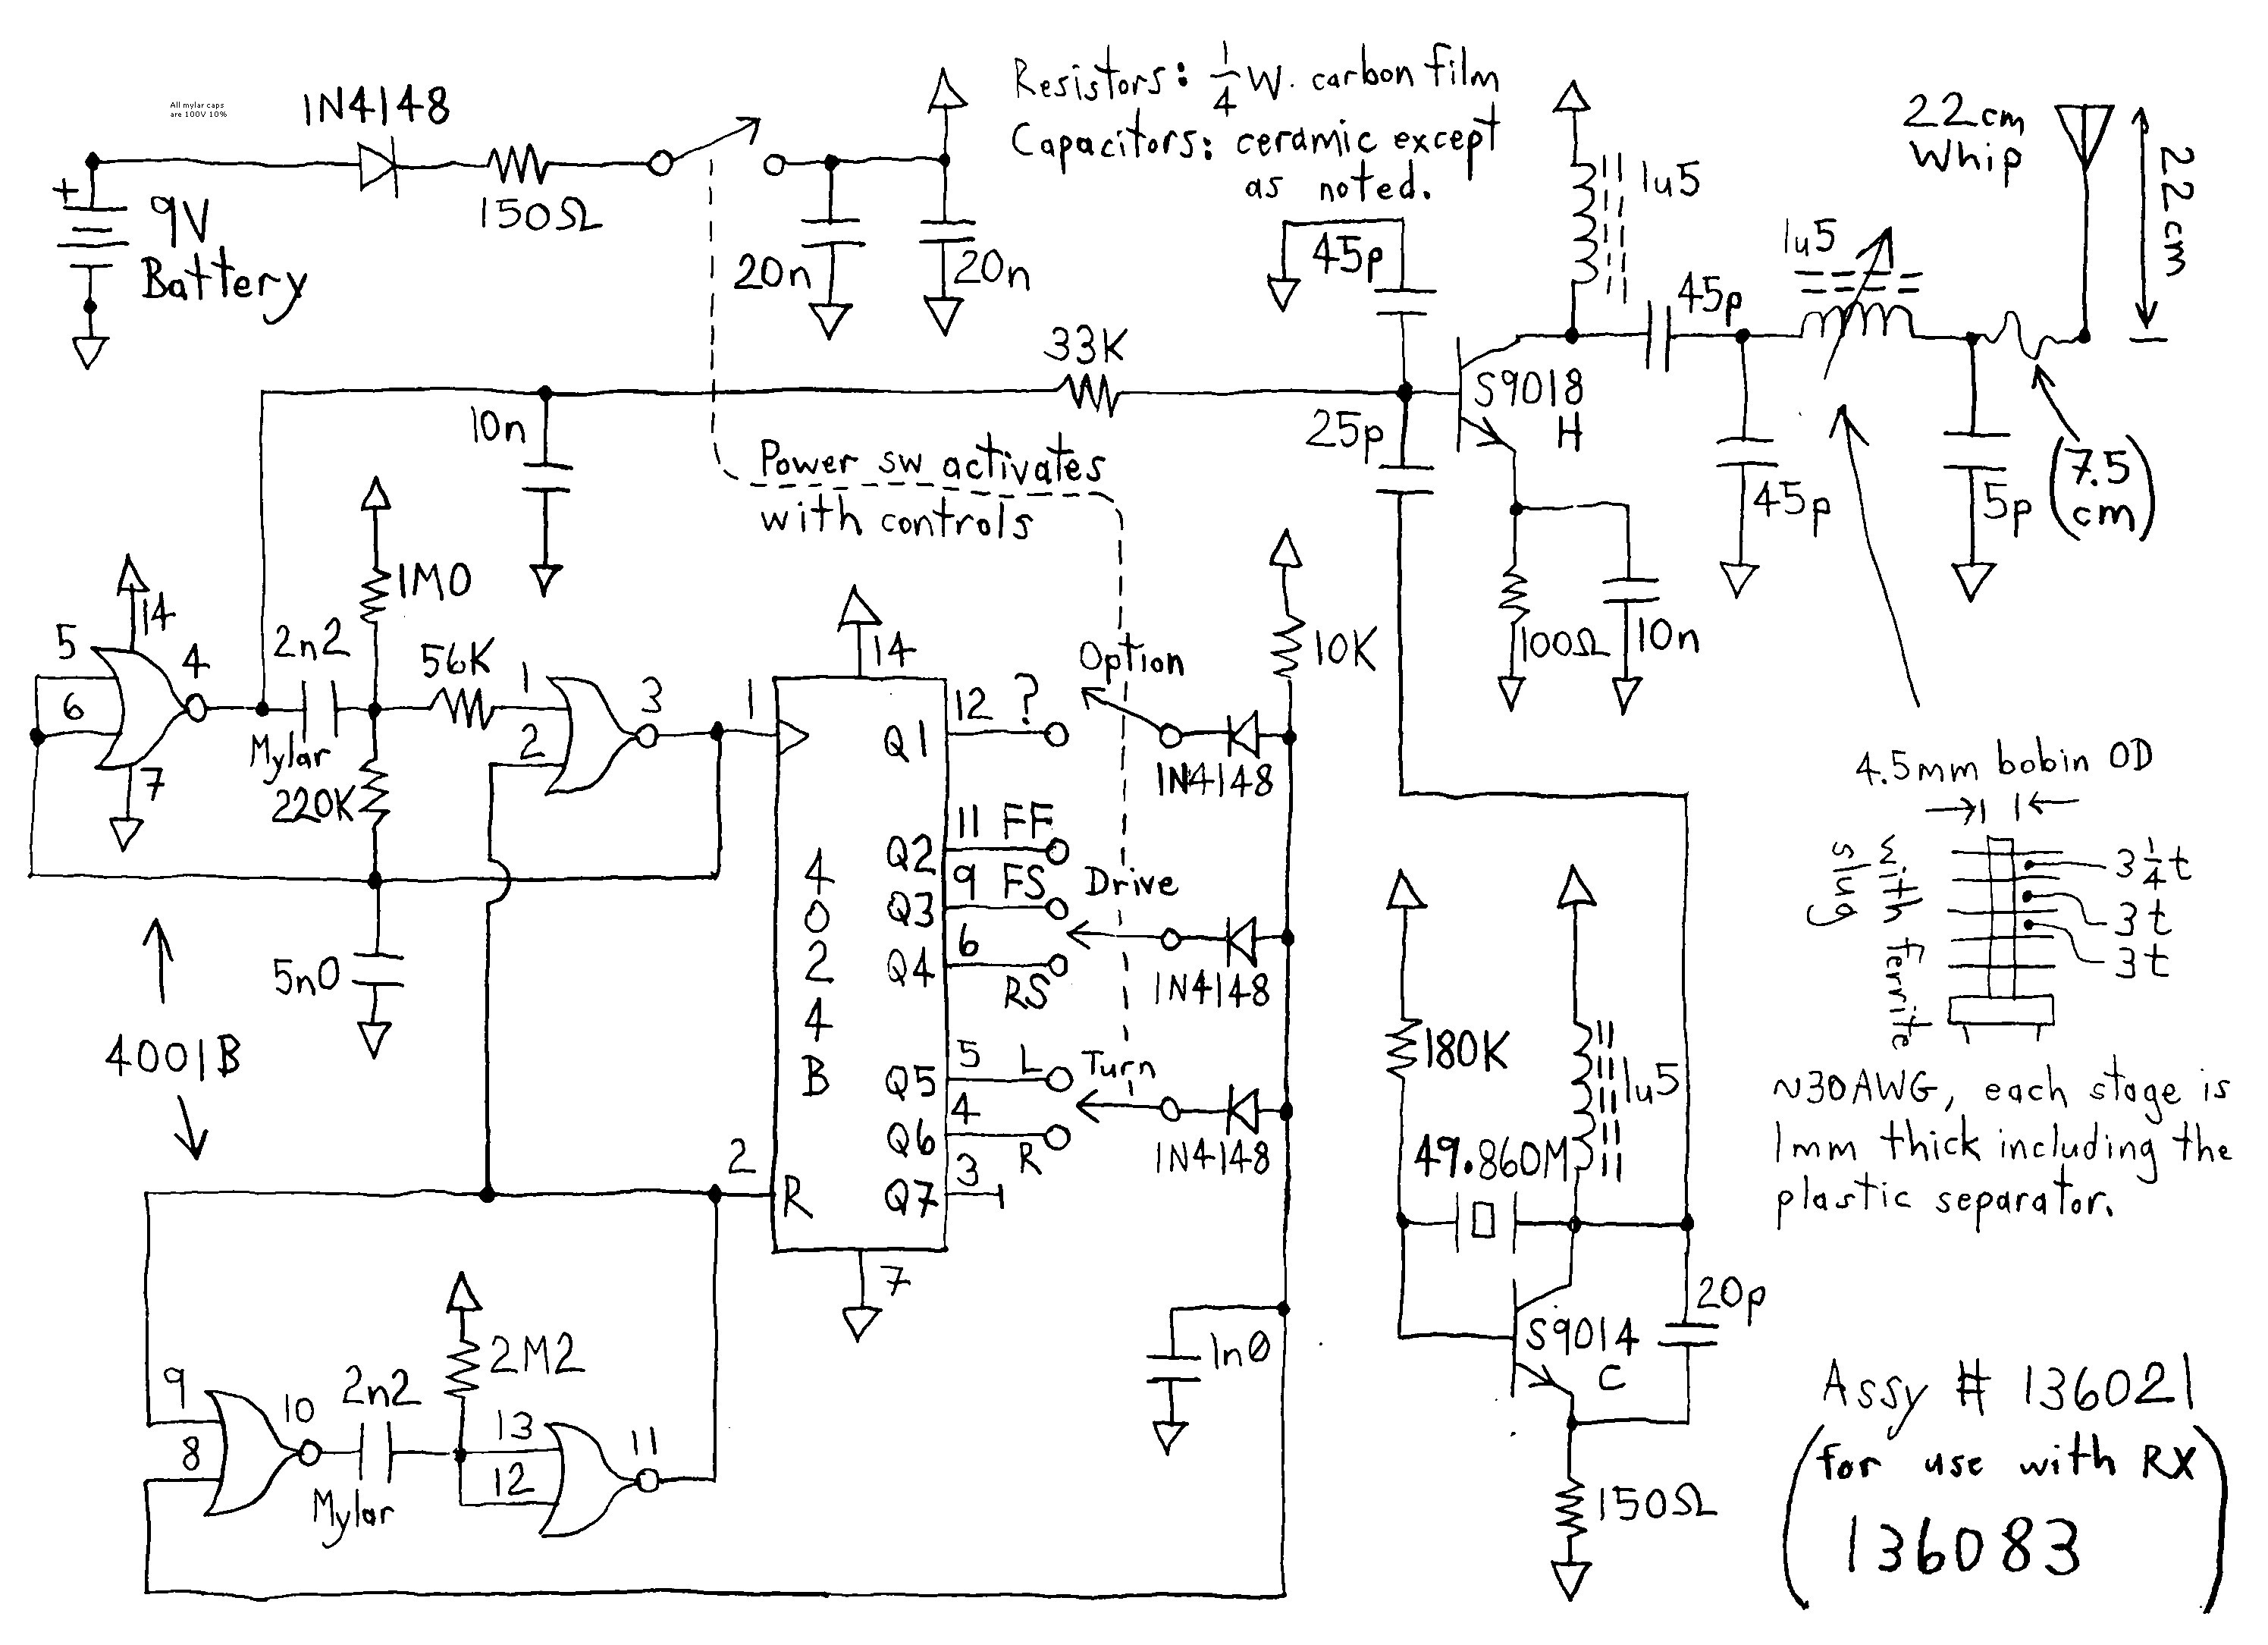 Toy Car Circuit Diagram Wireless Remote Control Car Circuit Diagram Wireless toy Car Circuit Of Toy Car Circuit Diagram Circuit Diagram Remote Control Car